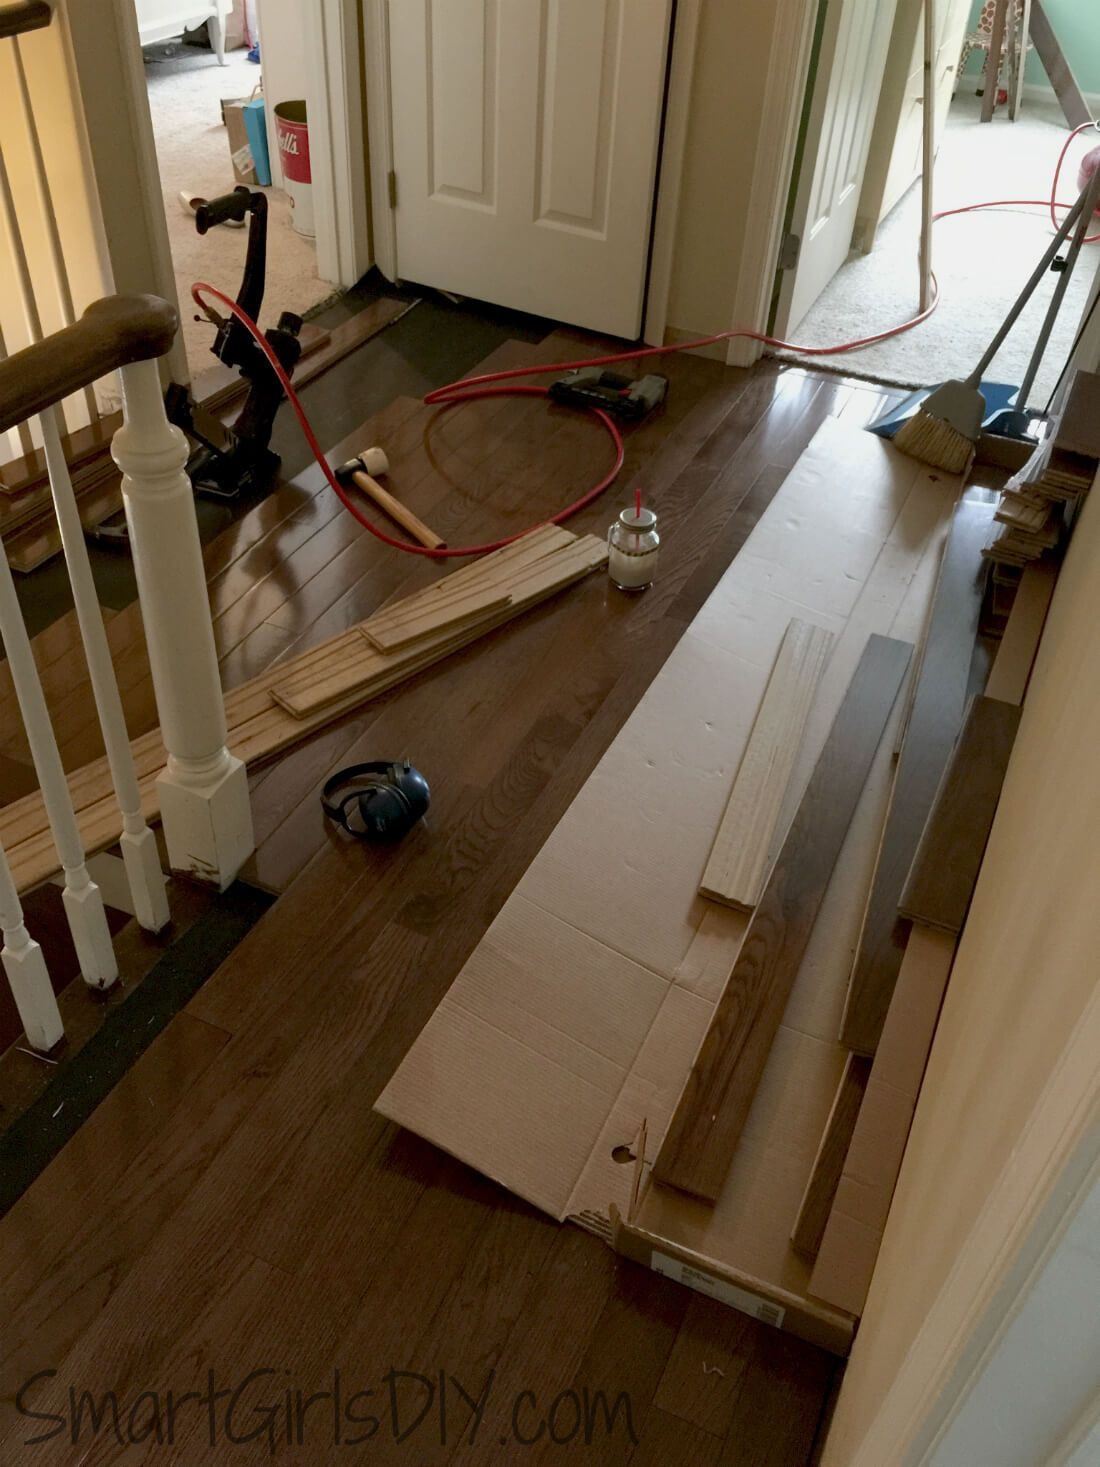 5 8 Vs 3 4 Hardwood Flooring Of Upstairs Hallway 1 Installing Hardwood Floors Pertaining to How to Install Hardwood Floor All by Yourself